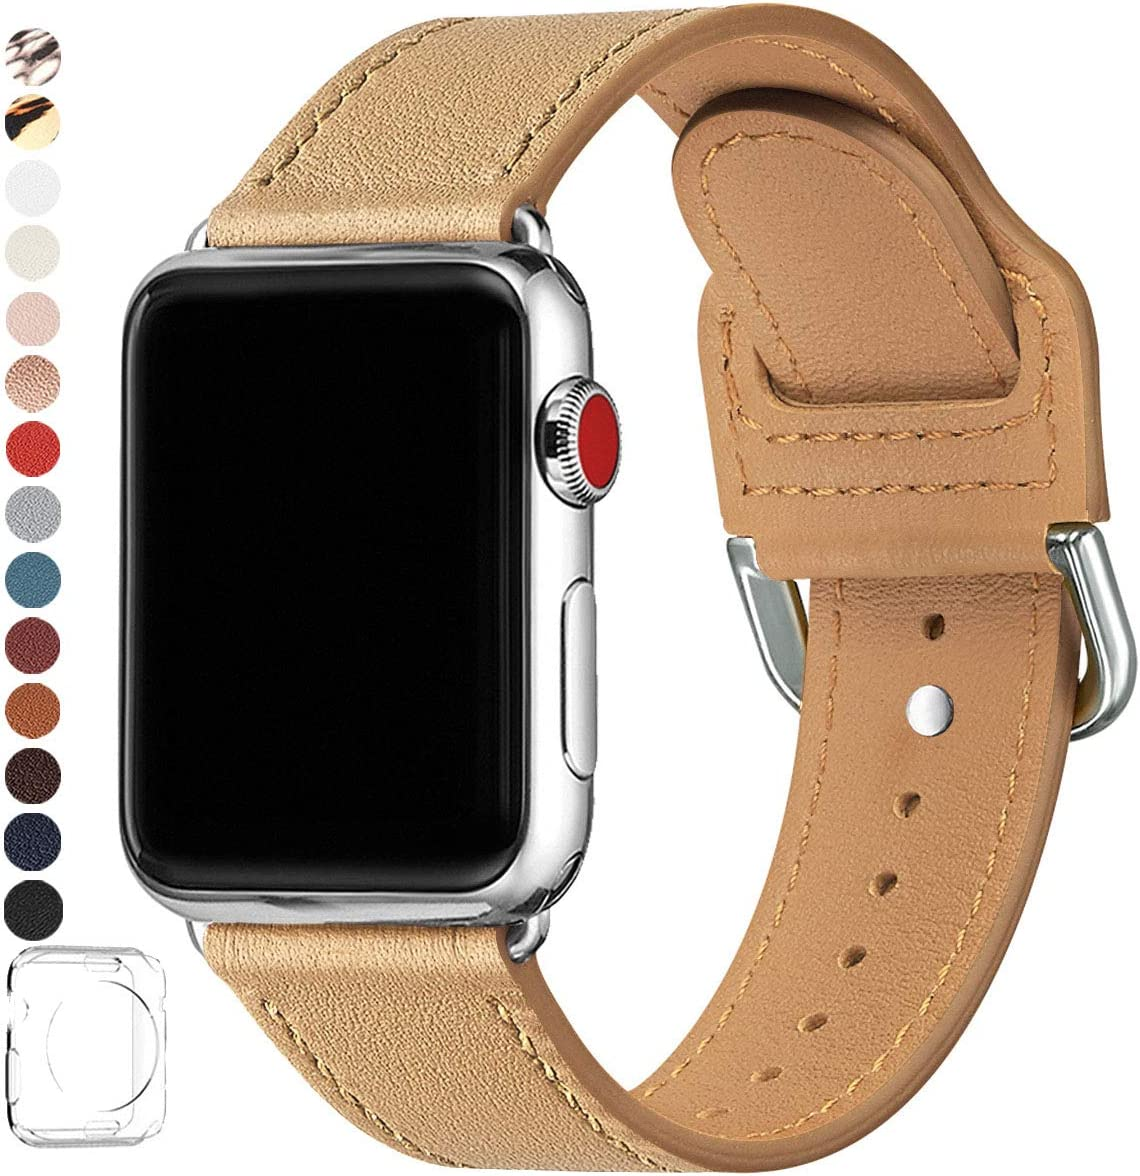 POWER PRIMACY Bands Compatible with Apple Watch Band 38mm 40mm 42mm 44mm, Top Grain Leather Smart Watch Strap Compatible for Men Women iWatch Series 6 5 4 3 2 1,SE (Light Tan/Silve,42mm 44mm)